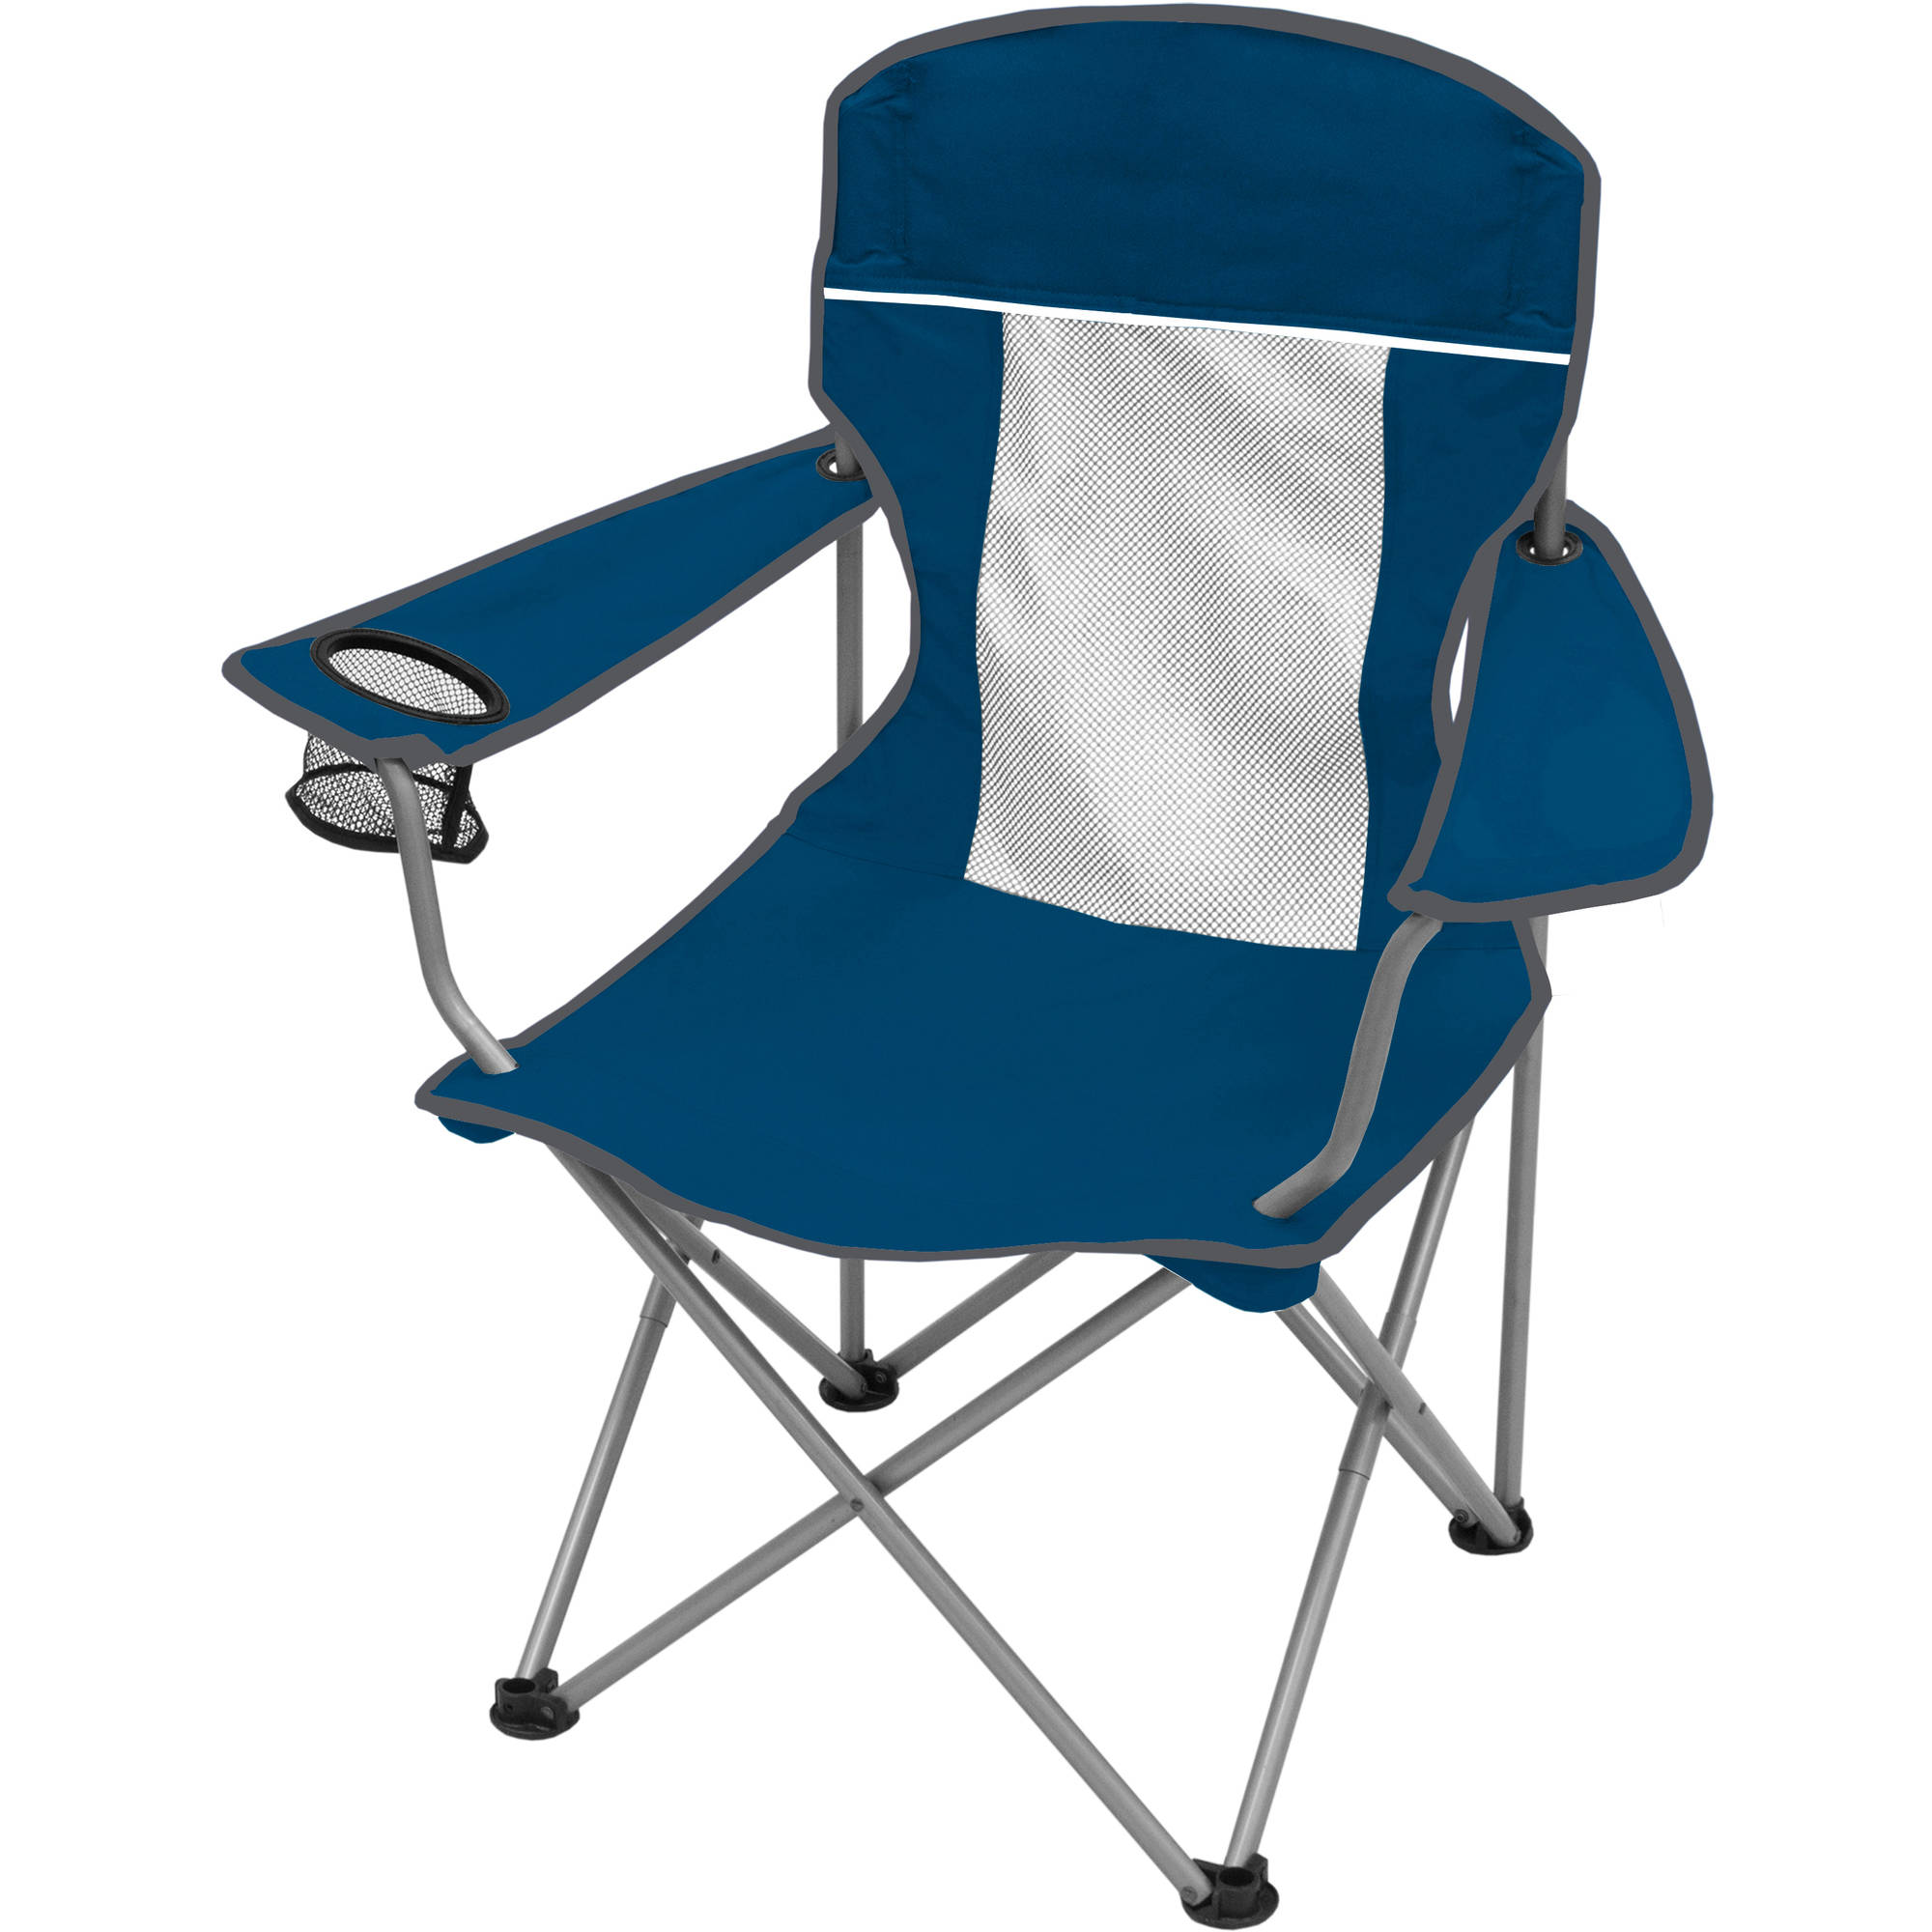 Ozark Trail Comfort Mesh Folding Camping Chair